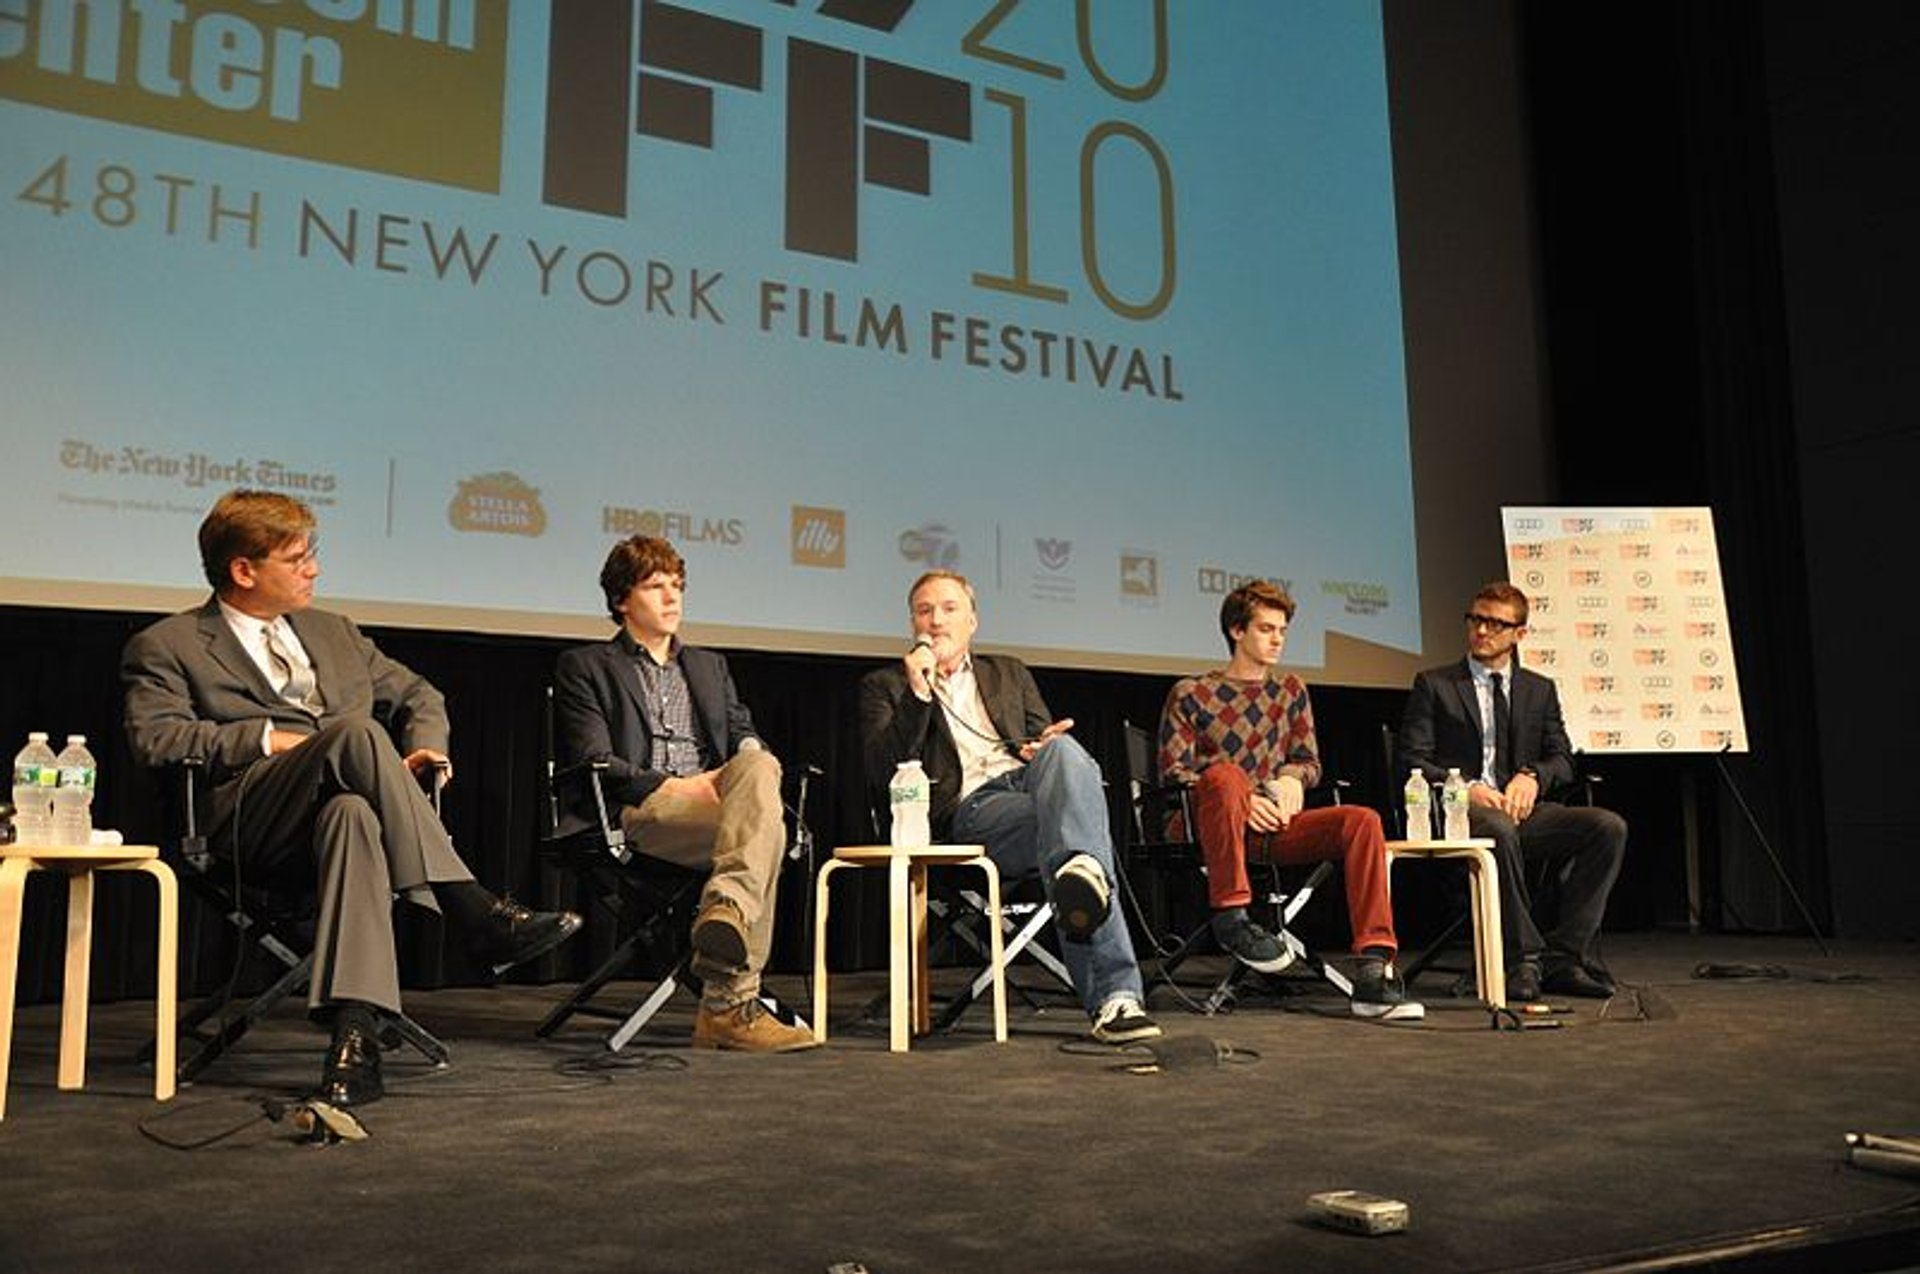 New York Film Festival (NYFF) in New York - Best Season 2019